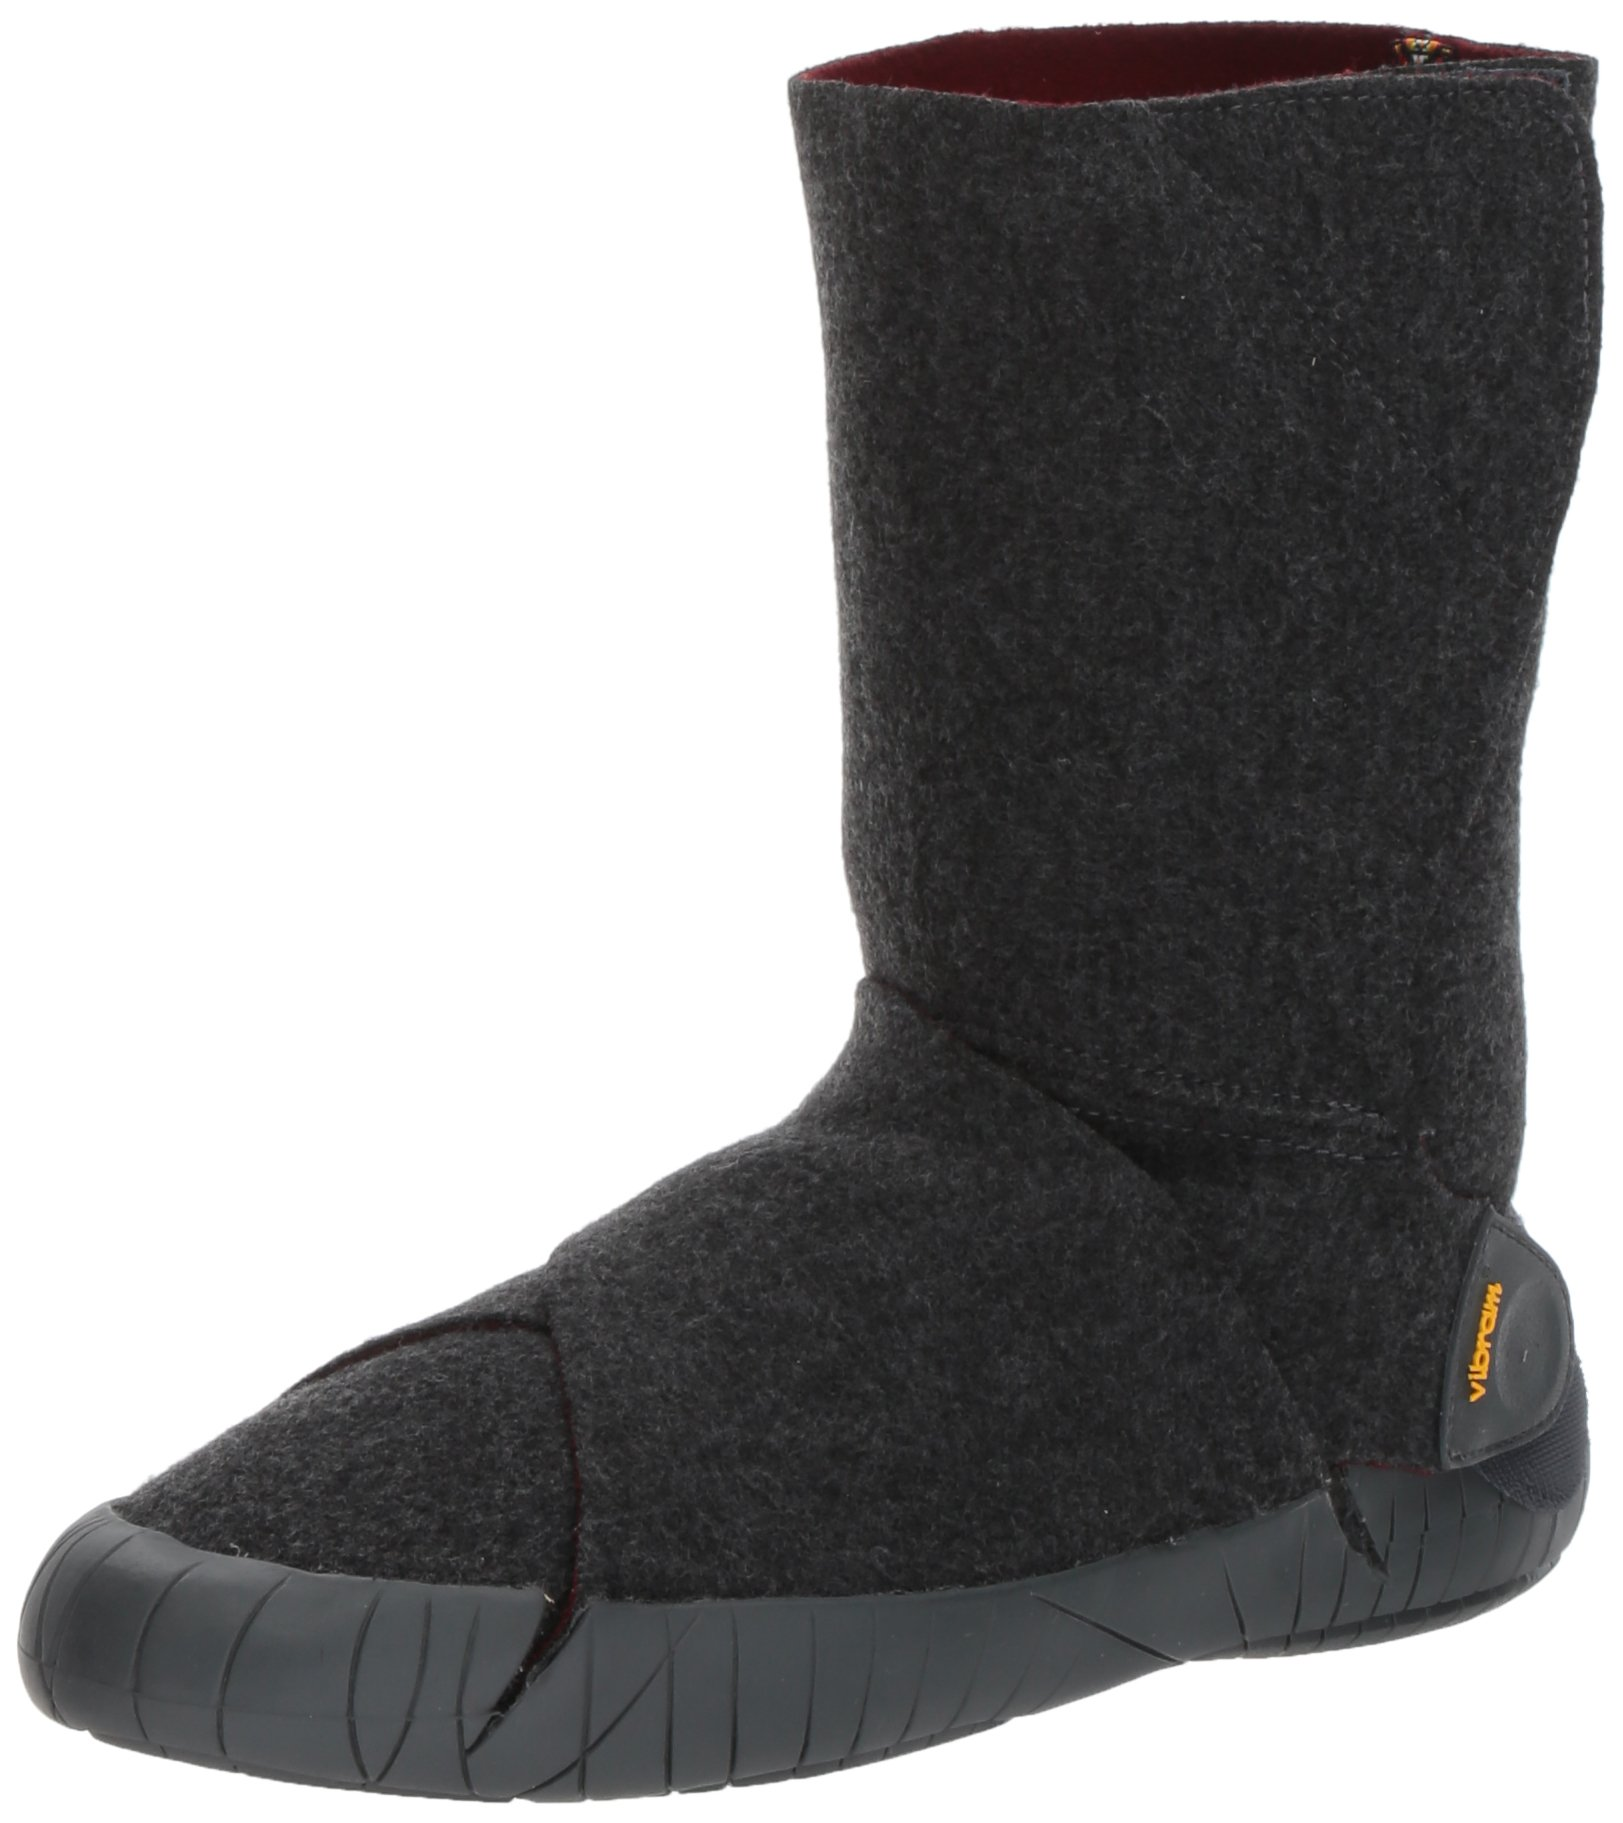 Vibram Furoshiki Mid Boot Russian Felt Sneaker, Grey/Red Wine, EU:40-41/UK Man:6-7.5/UK Woman:7.5-8.5/cm:25-26/US Man:7-8.5/US Woman:8.5-9.5 by Vibram